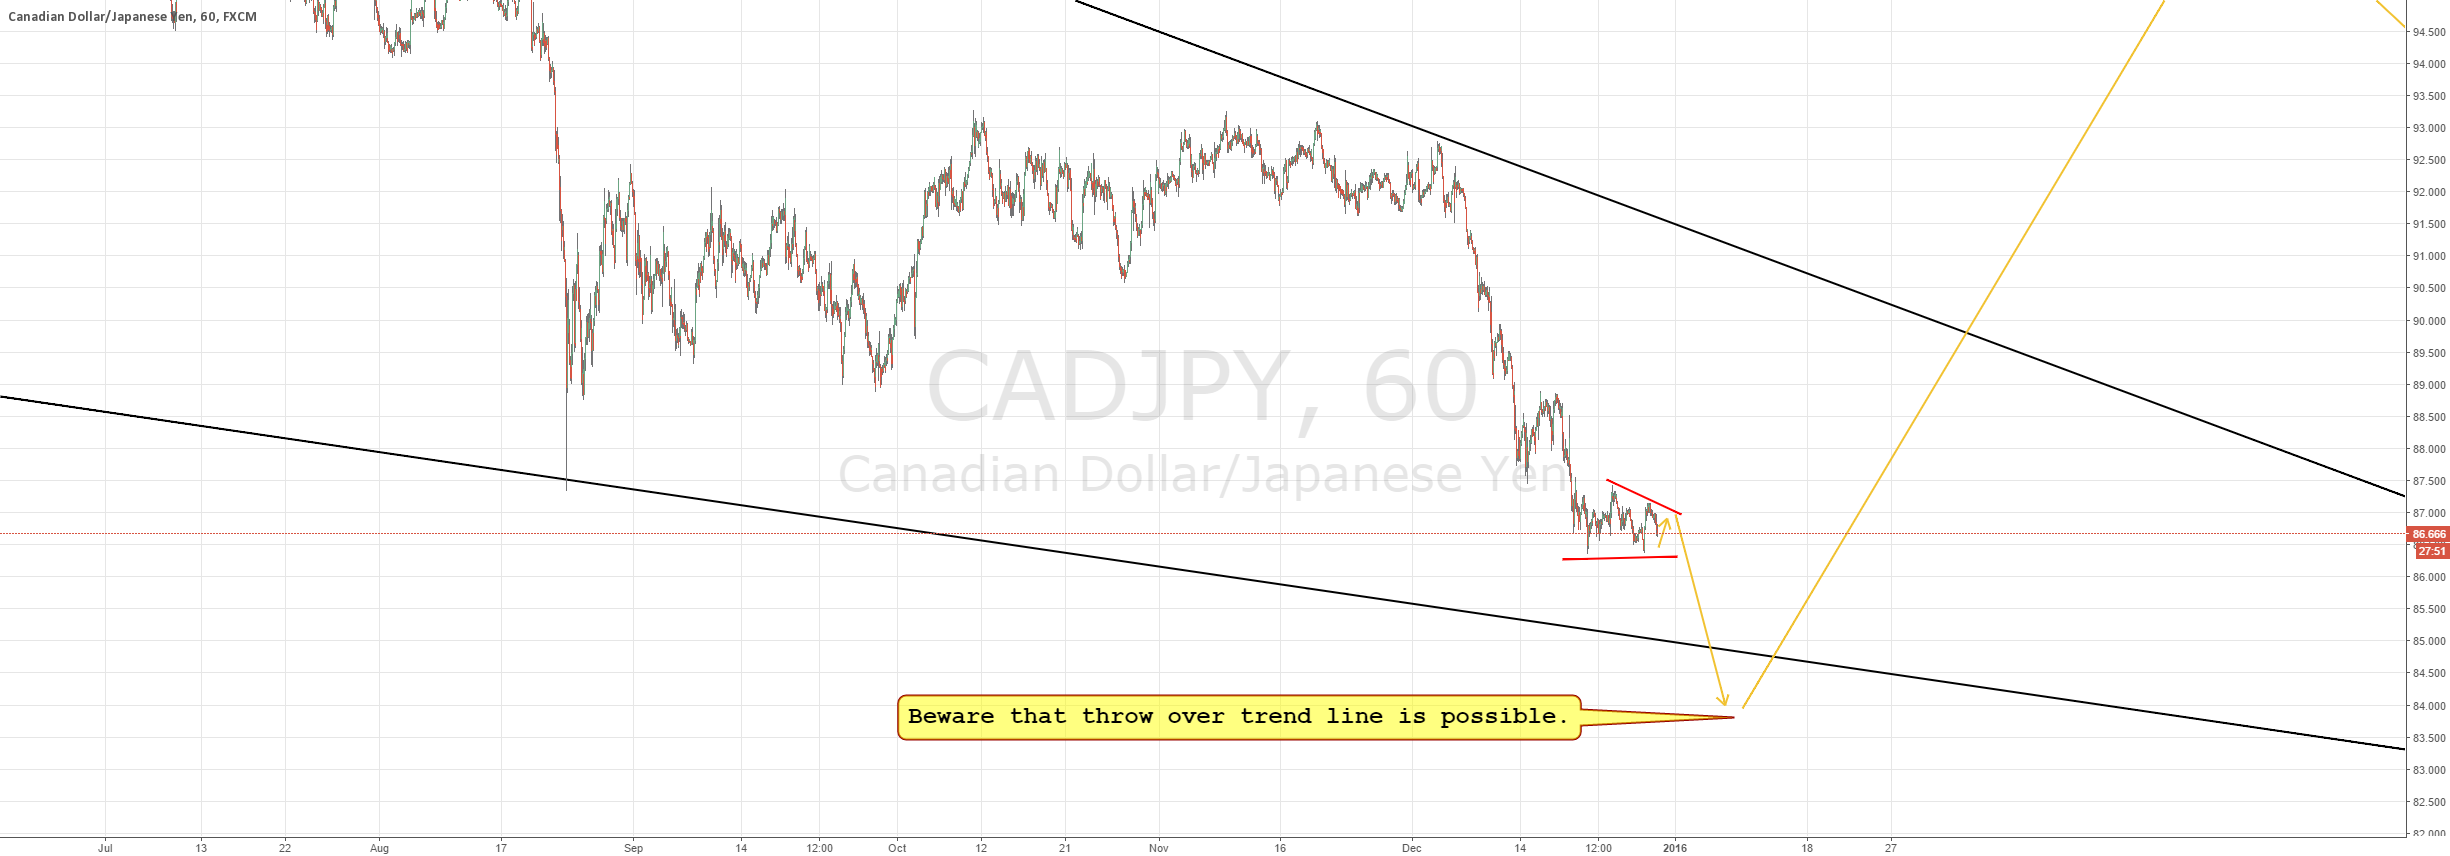 Closer look at the CADJPY triangle